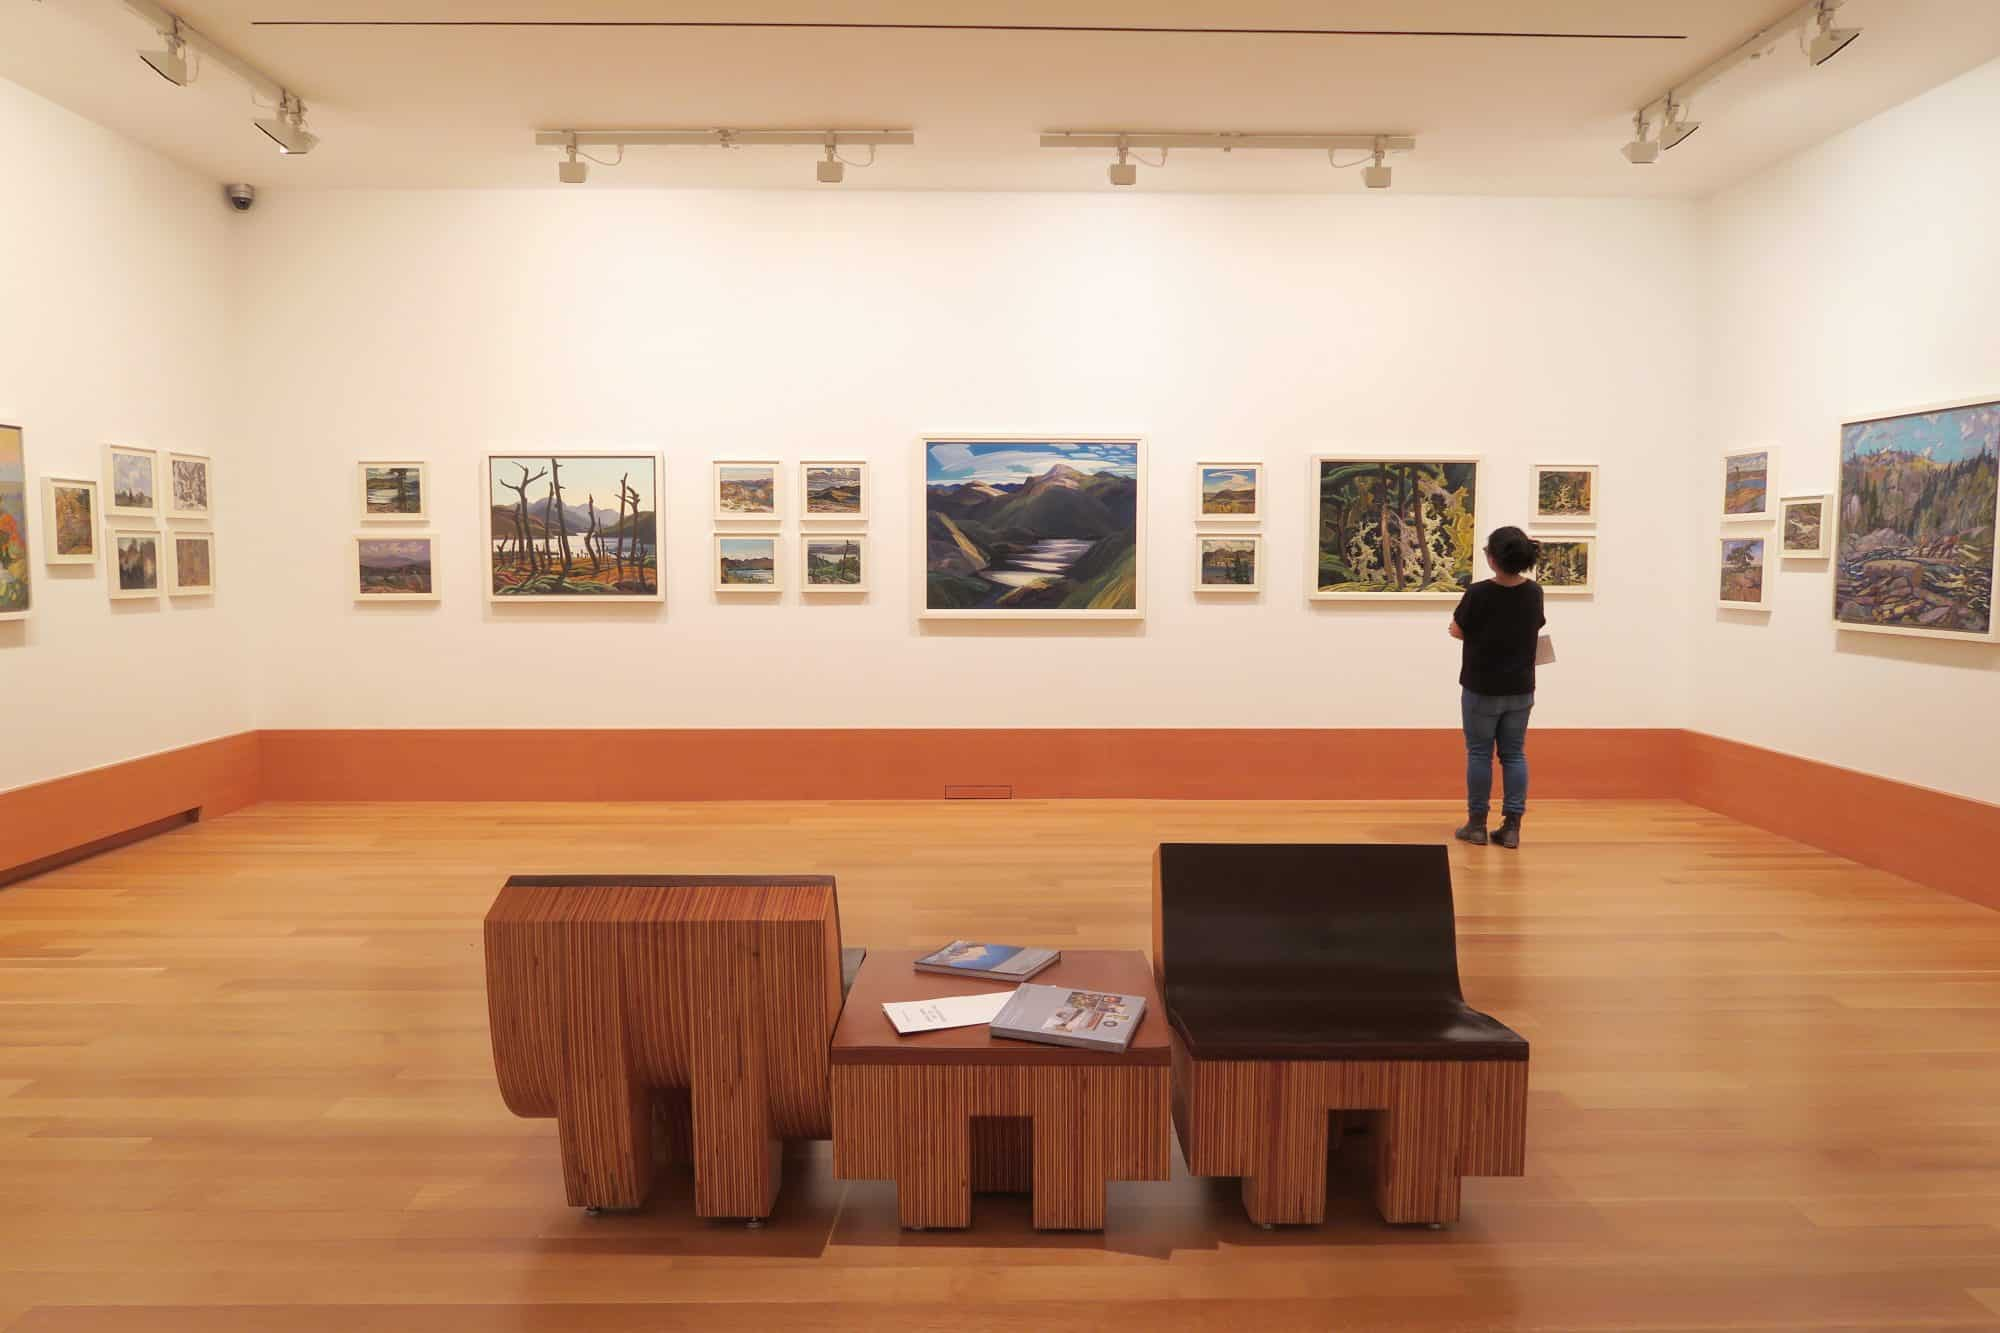 There's plenty of cool works to see at the Art Gallery of Ontario